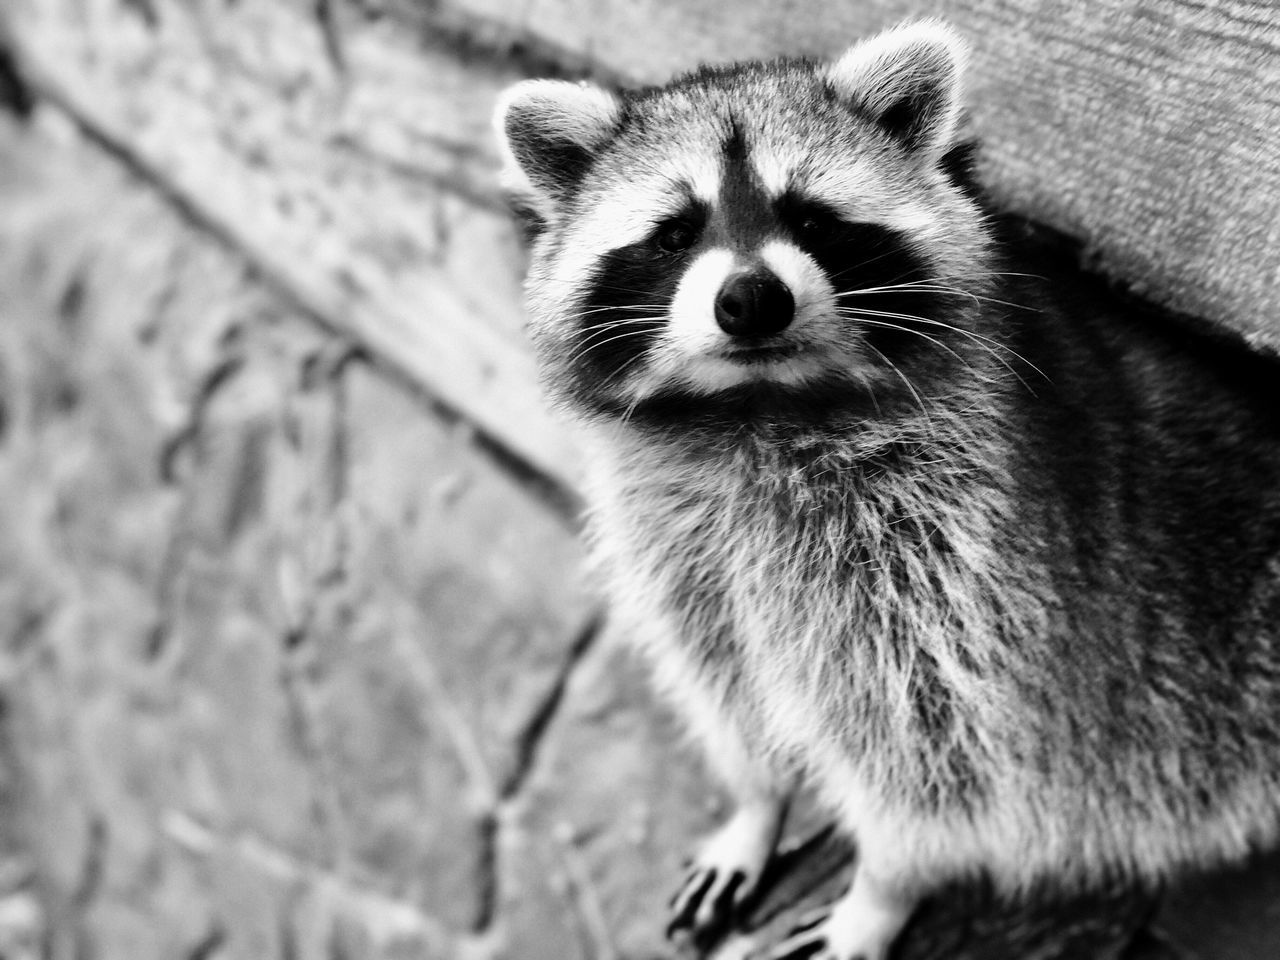 Hello. One Animal Animal Themes Mammal Animals In The Wild Whisker Nature No People Outdoors Day Close-up Red Panda Racoon